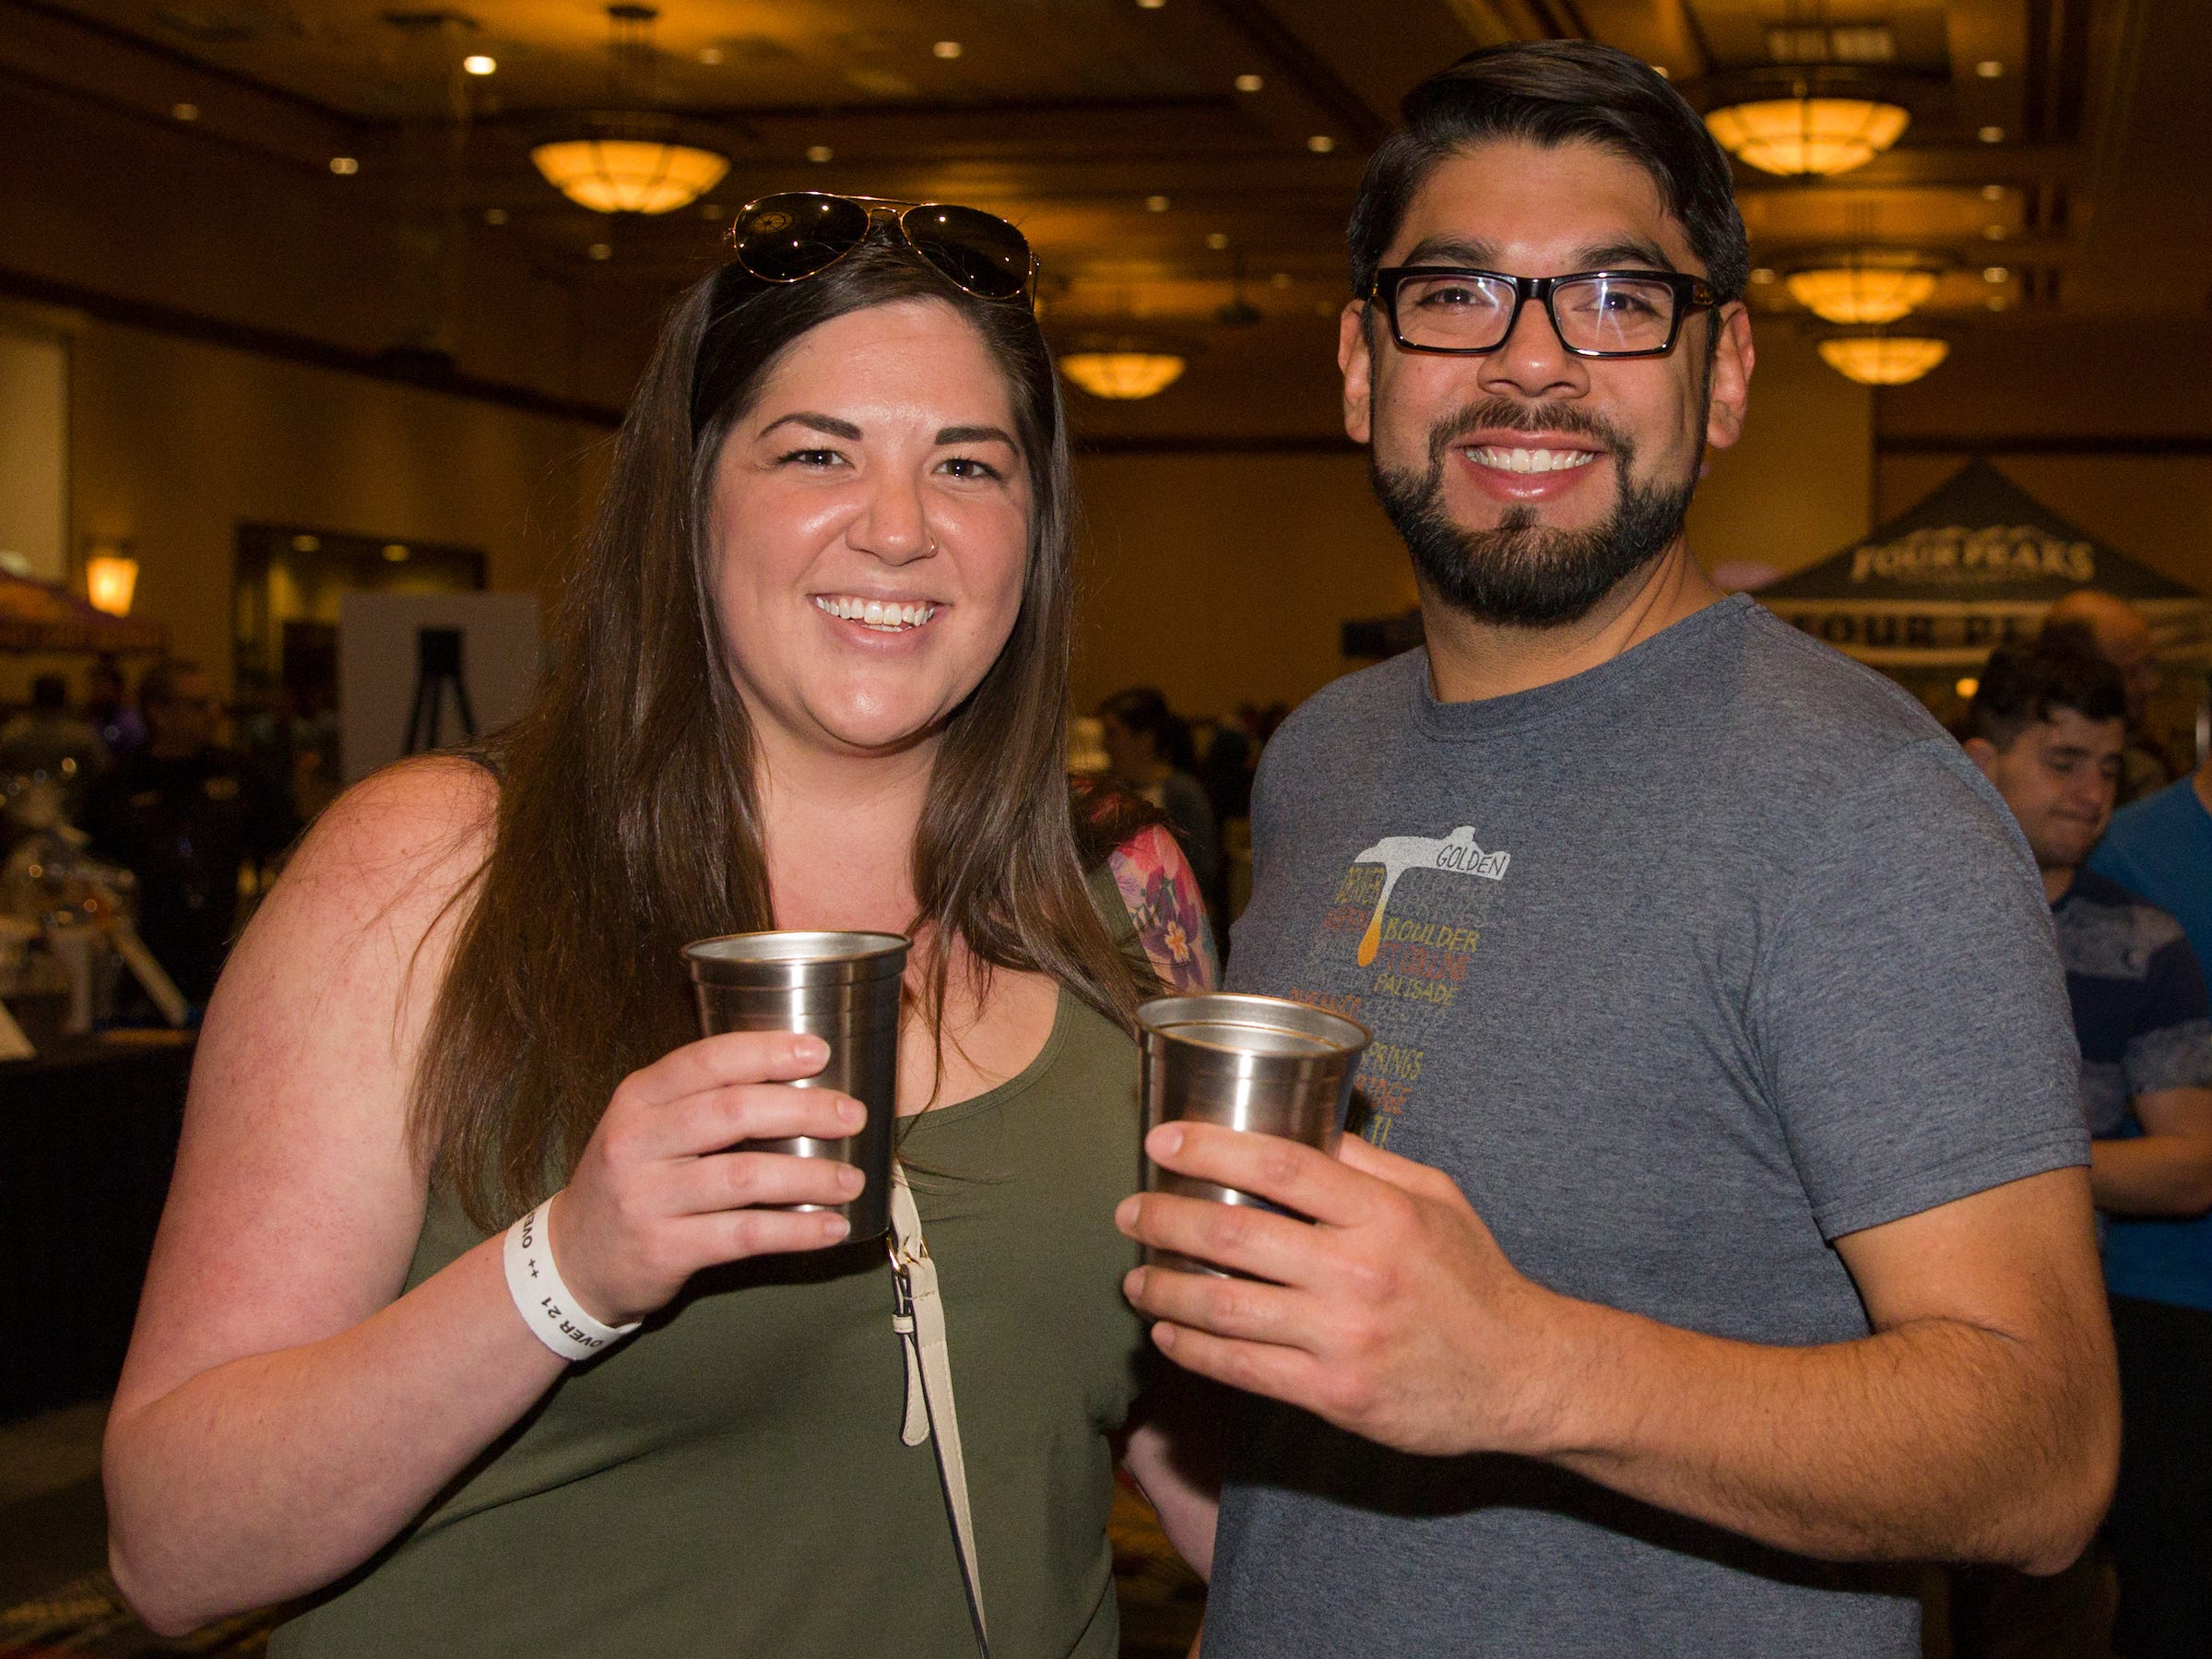 Kristen and Marco during the Young Alumni Beer Fest in the Reno Ballroom in downtown Reno on Friday, May 3, 2019.